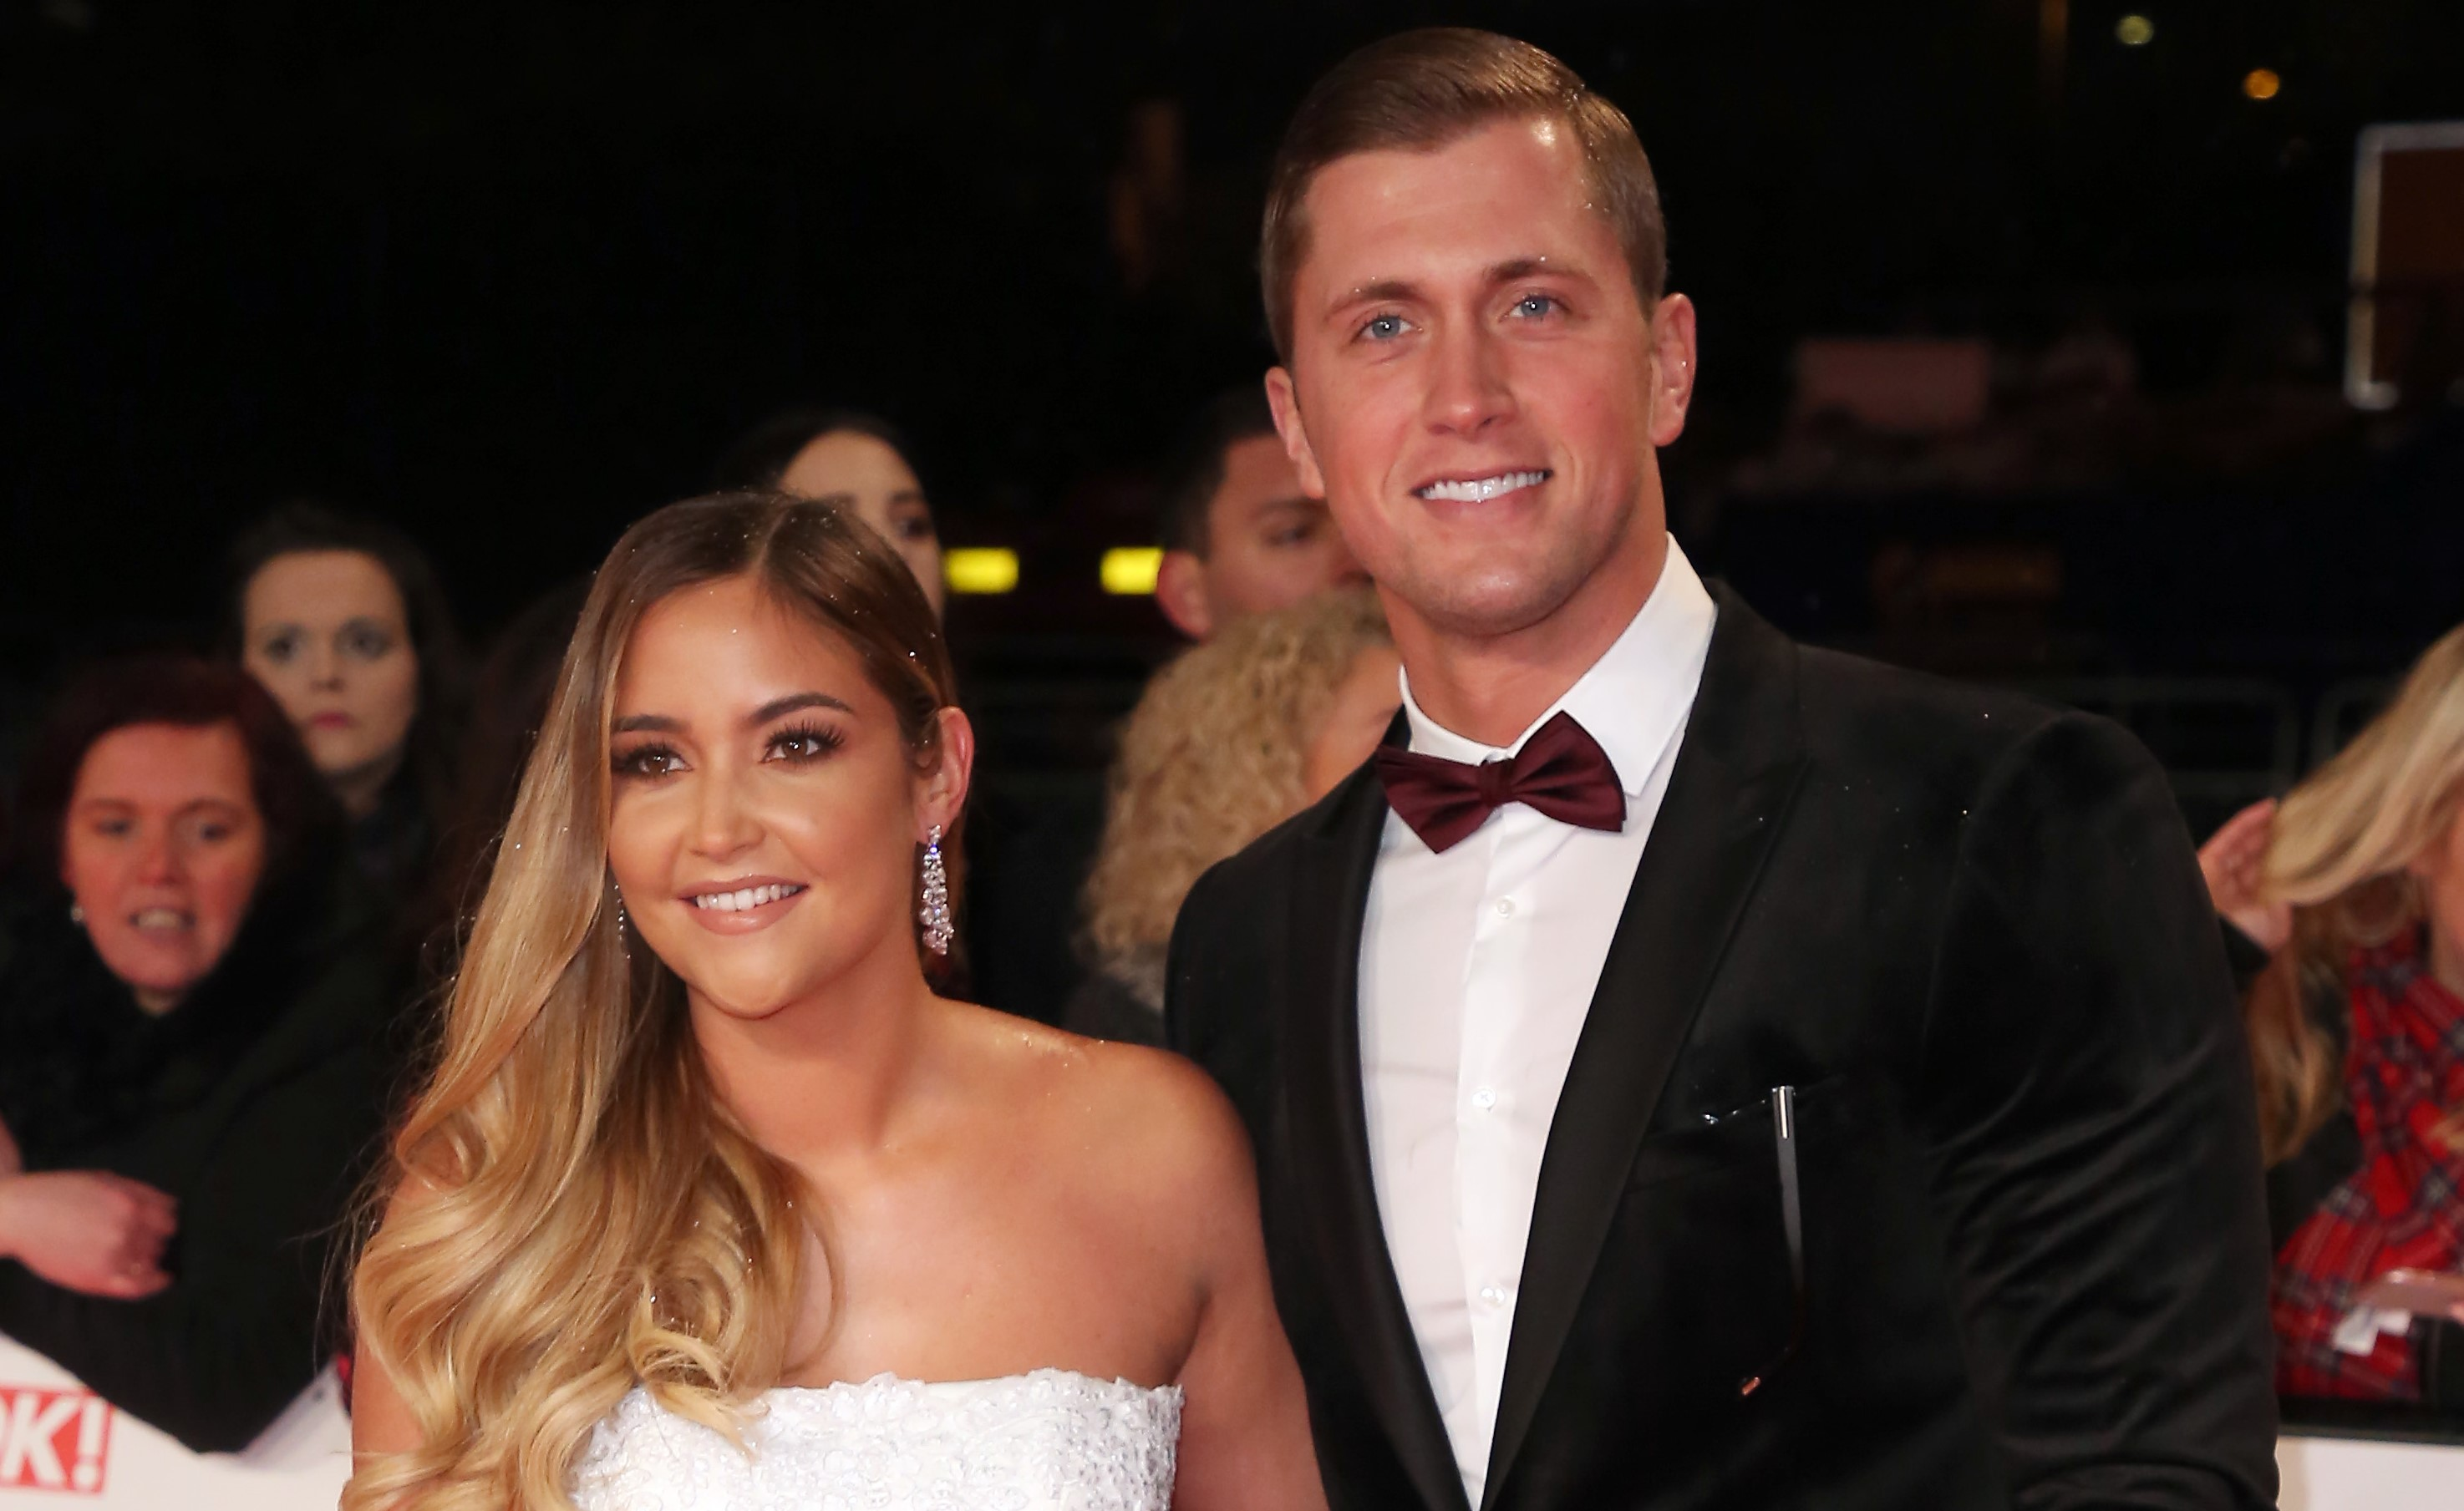 Jacqueline Jossa and Dan Osborne reunite to attend his nan's funeral following 'split'